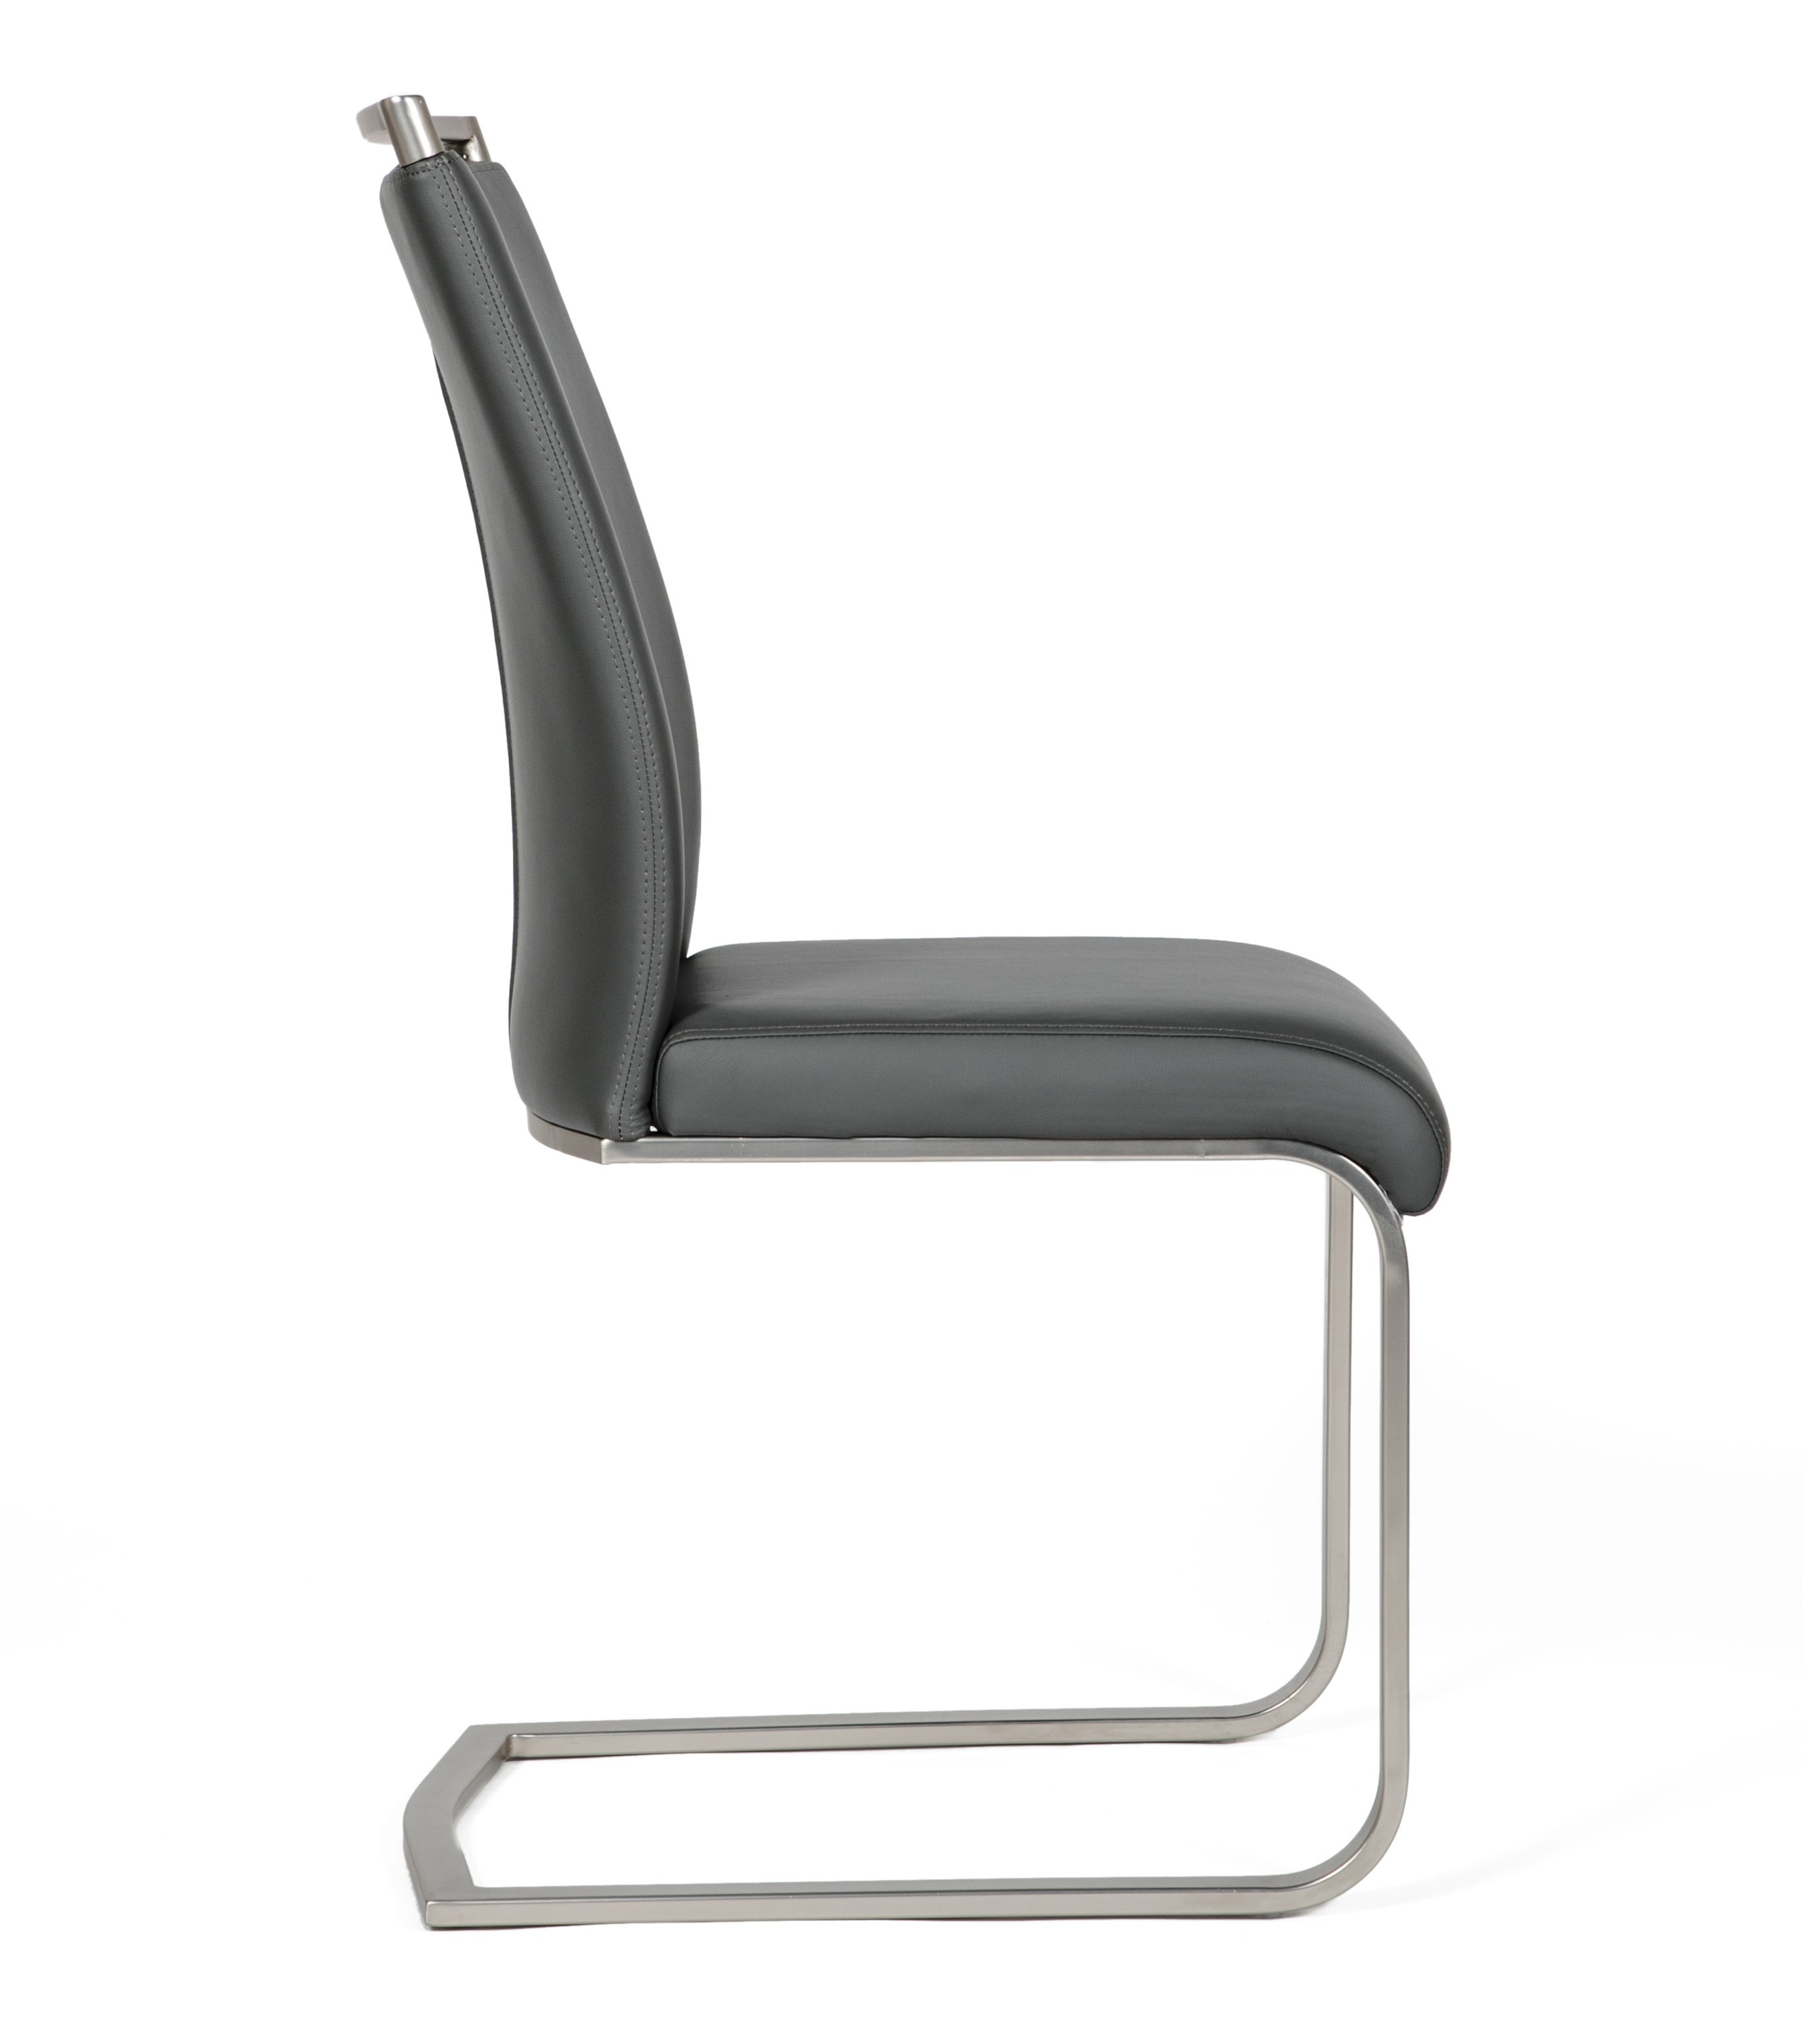 Franklin Grey Leather modern cantilever dining chair